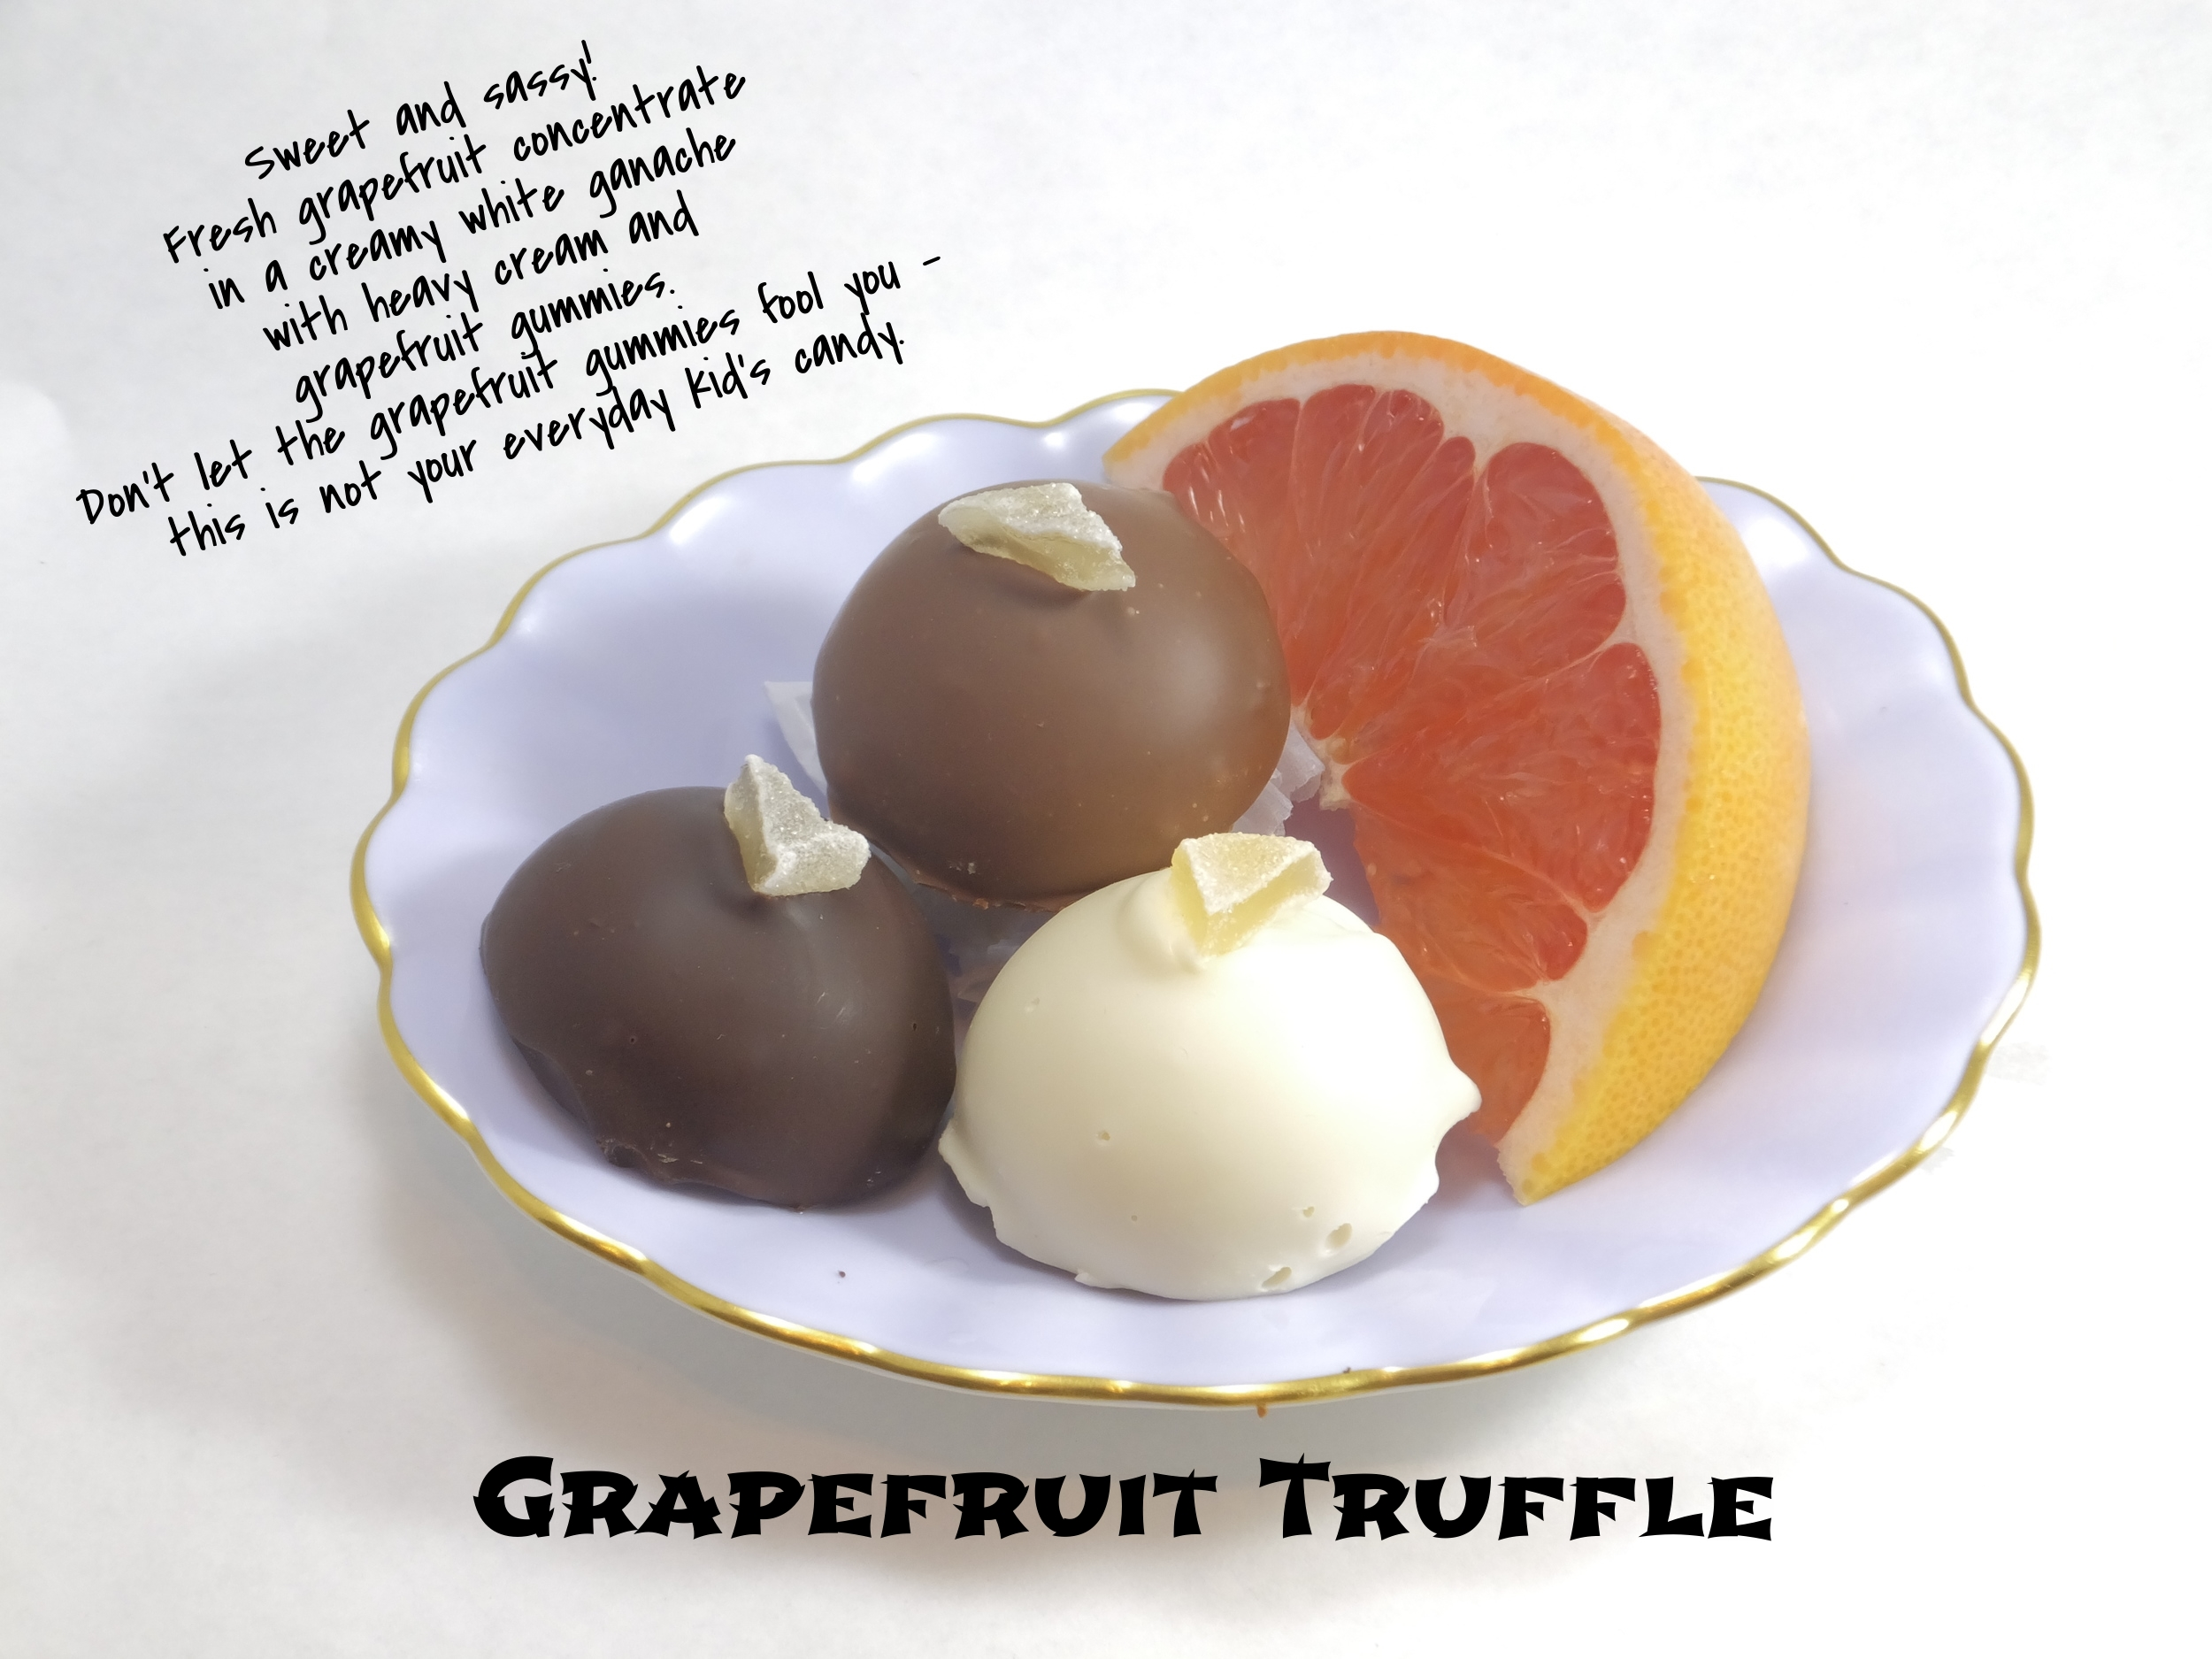 Grapefruit Truffle